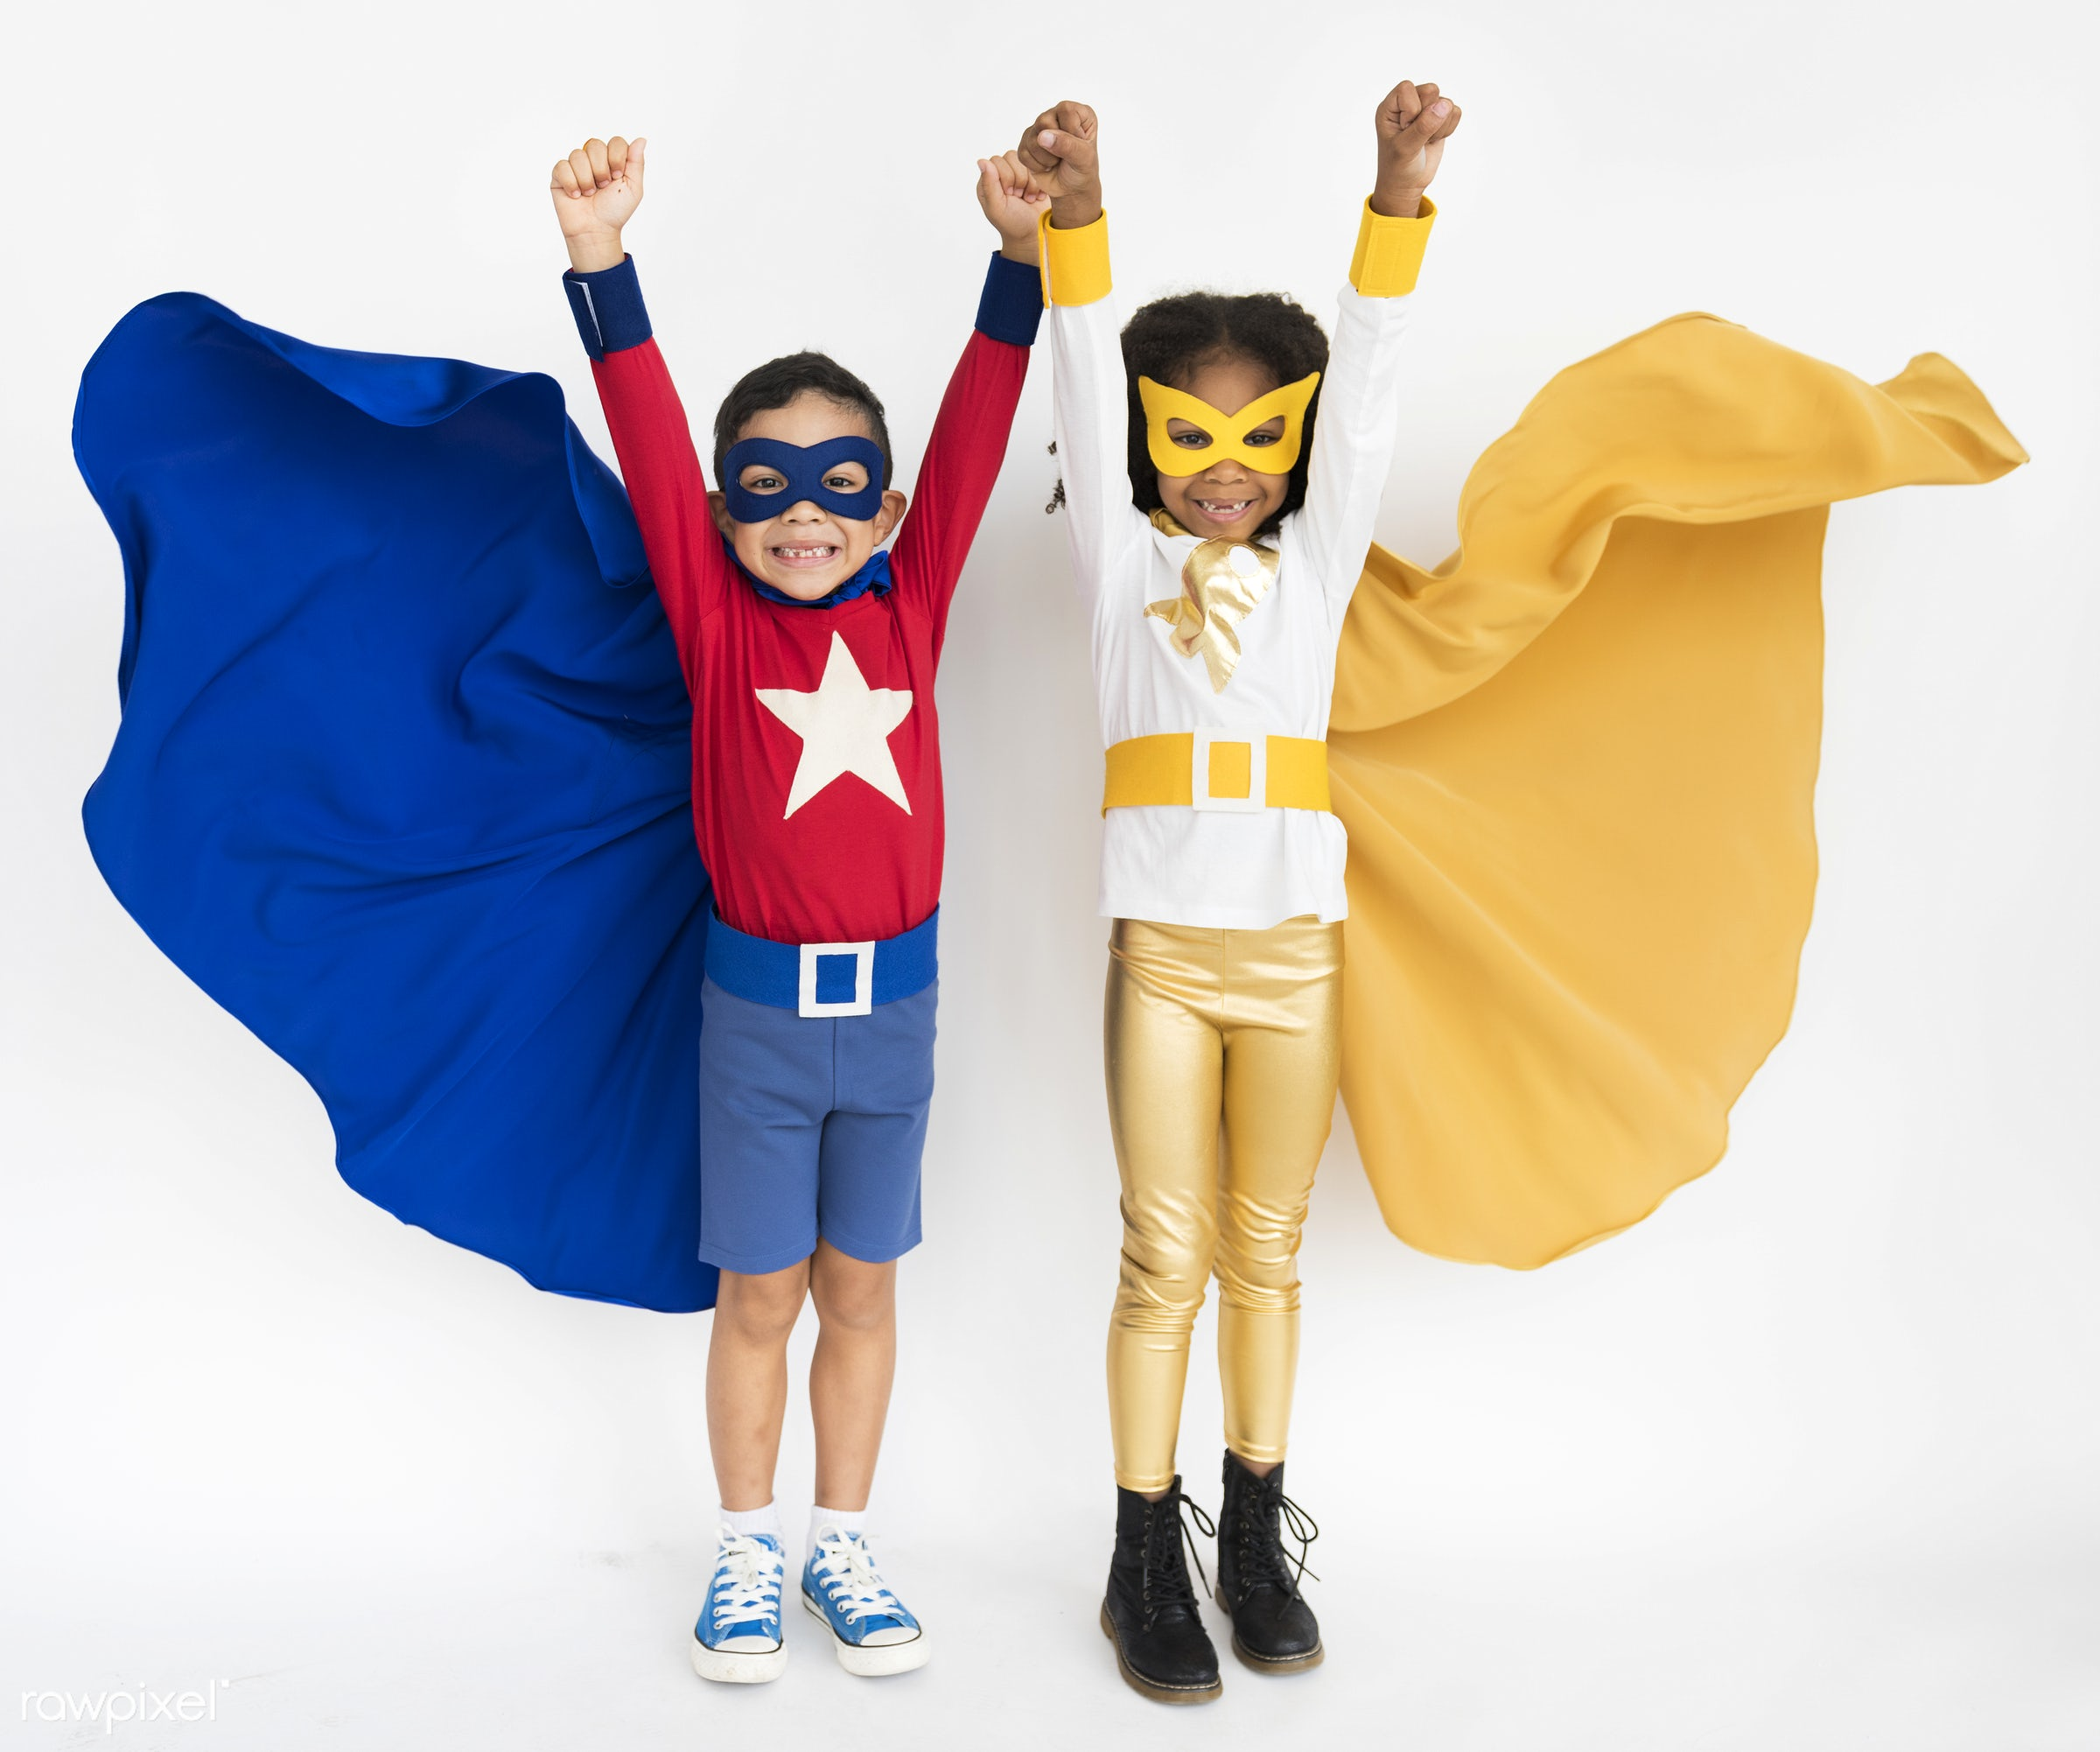 expression, studio, person, mask, cute, people, pretty, child, girl, happy, casual, childhood, cheerful, smiling, superhero...